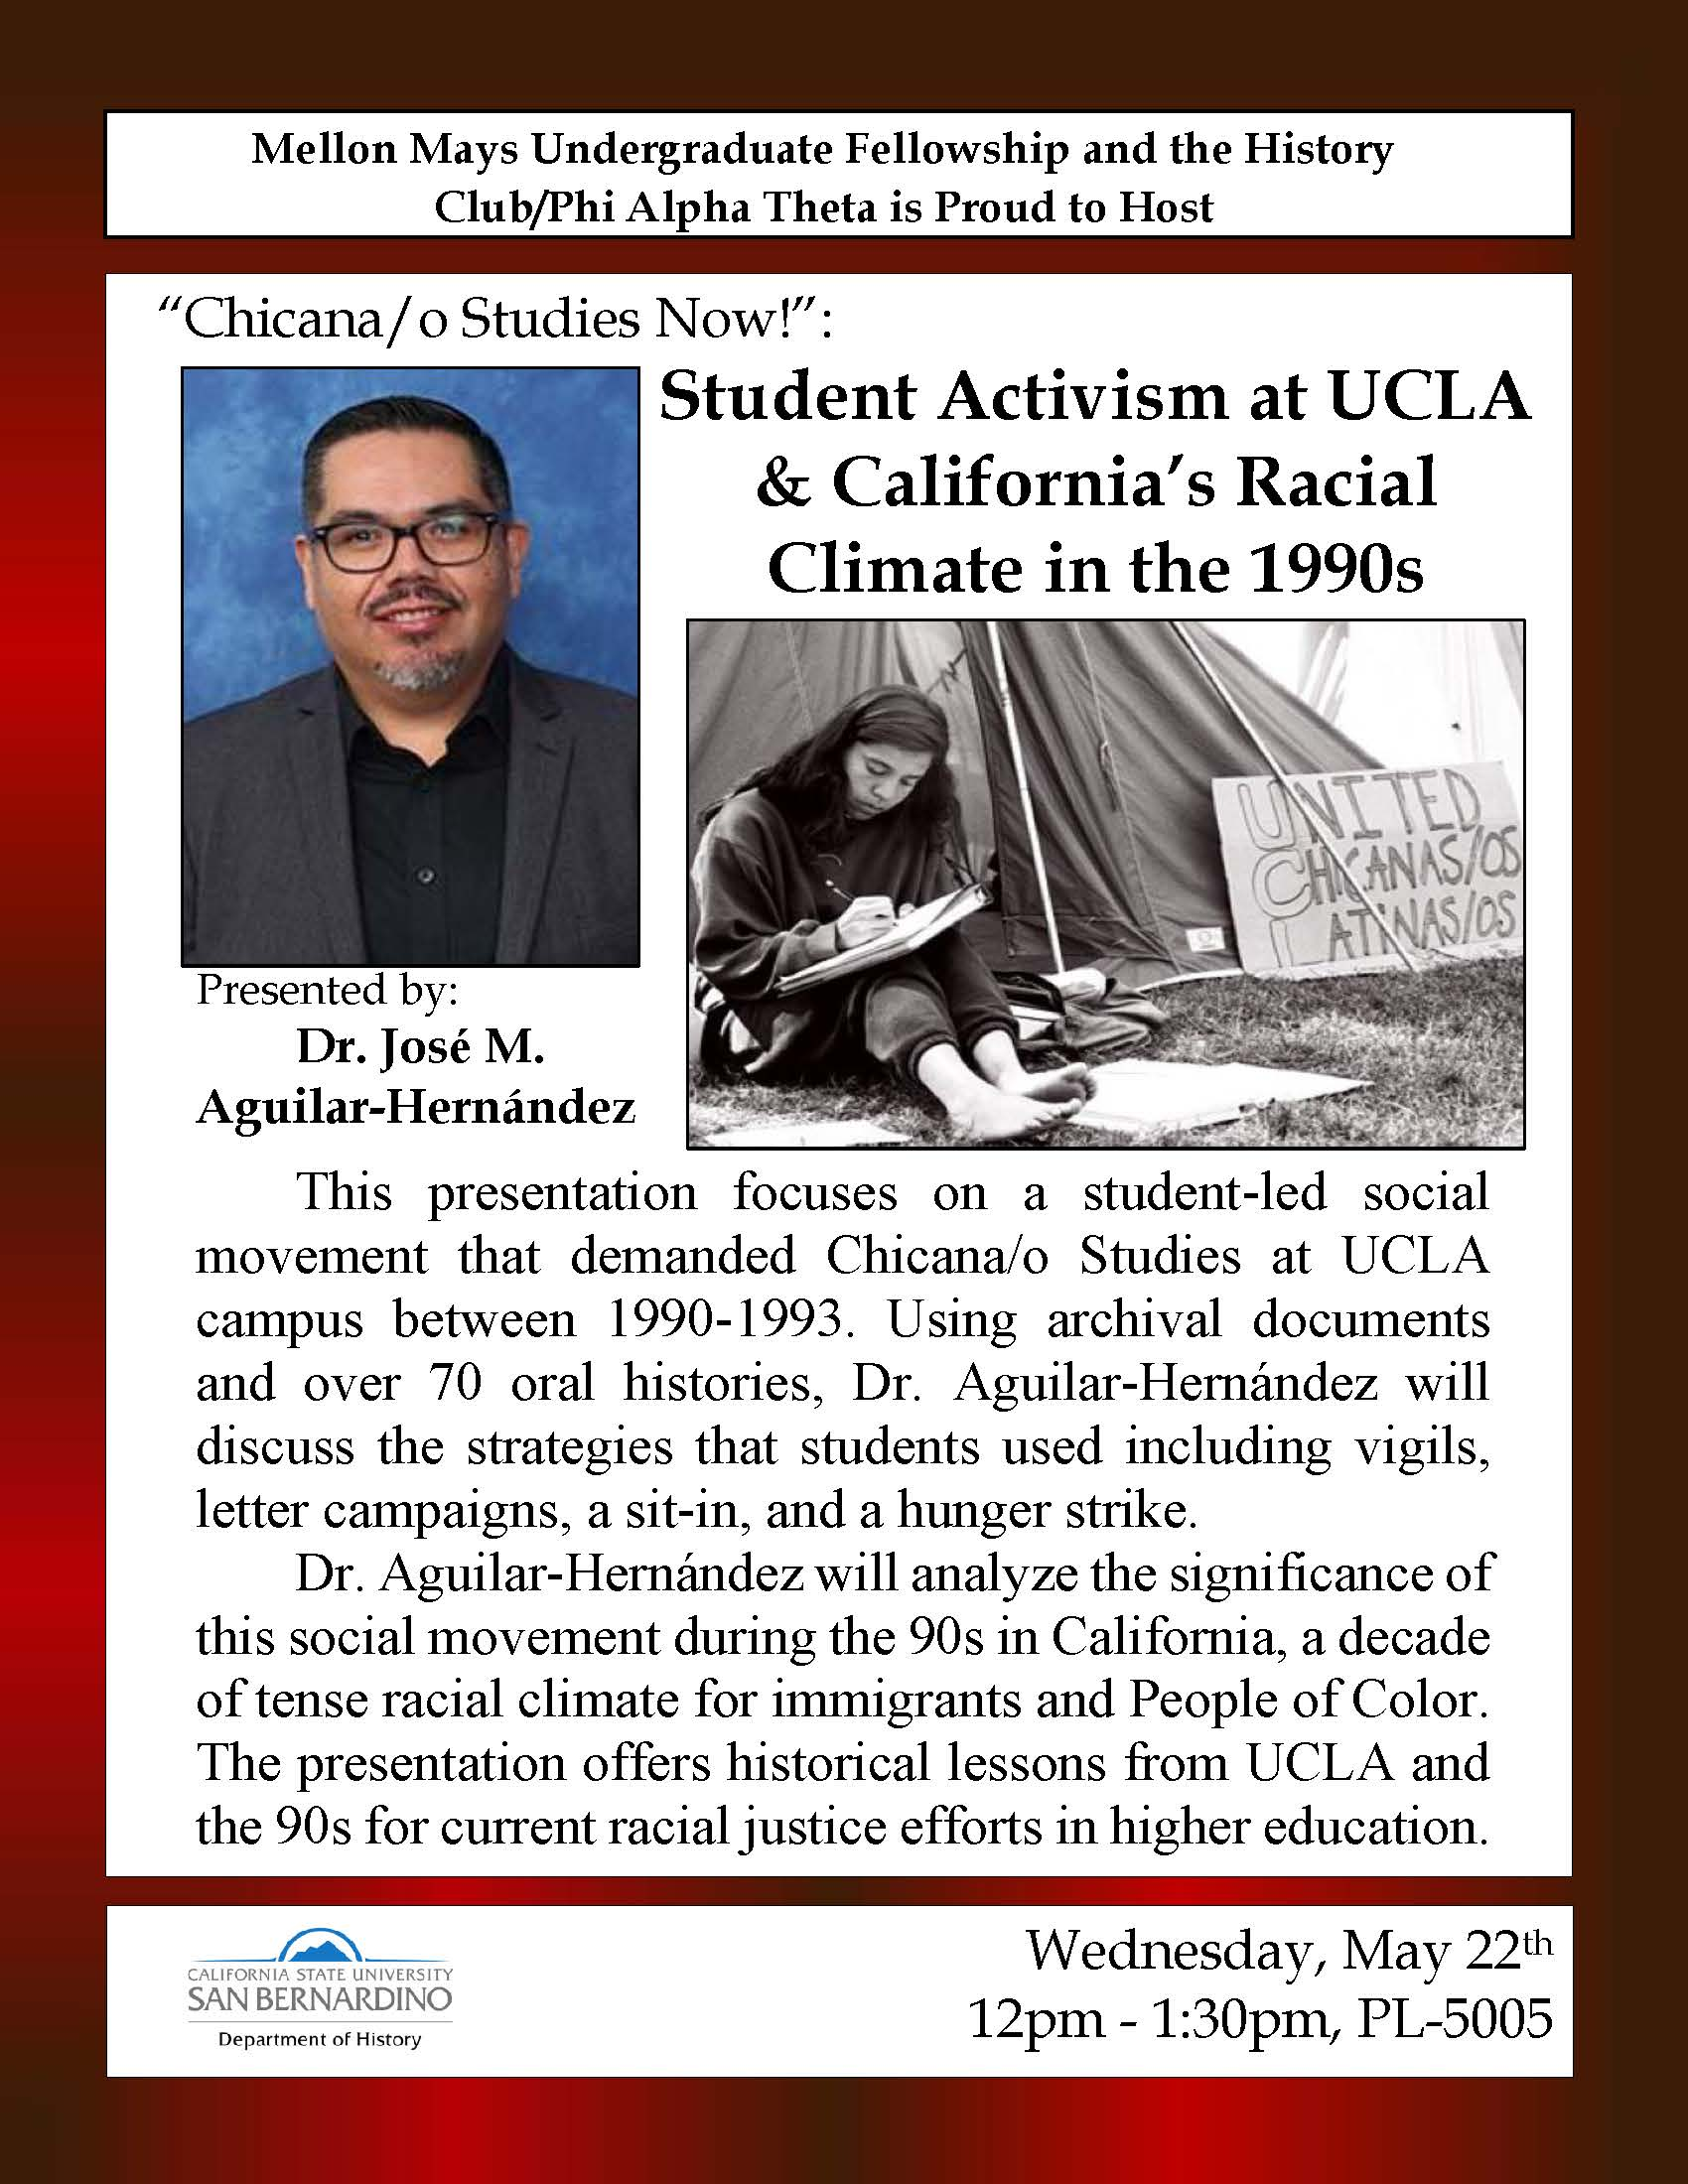 """""""Chicana/o Studies Now!: Student Activism at UCLA & California's Racial Climate in the 1990s,"""" by José M. Aguilar-Hernández, is set for May 22"""